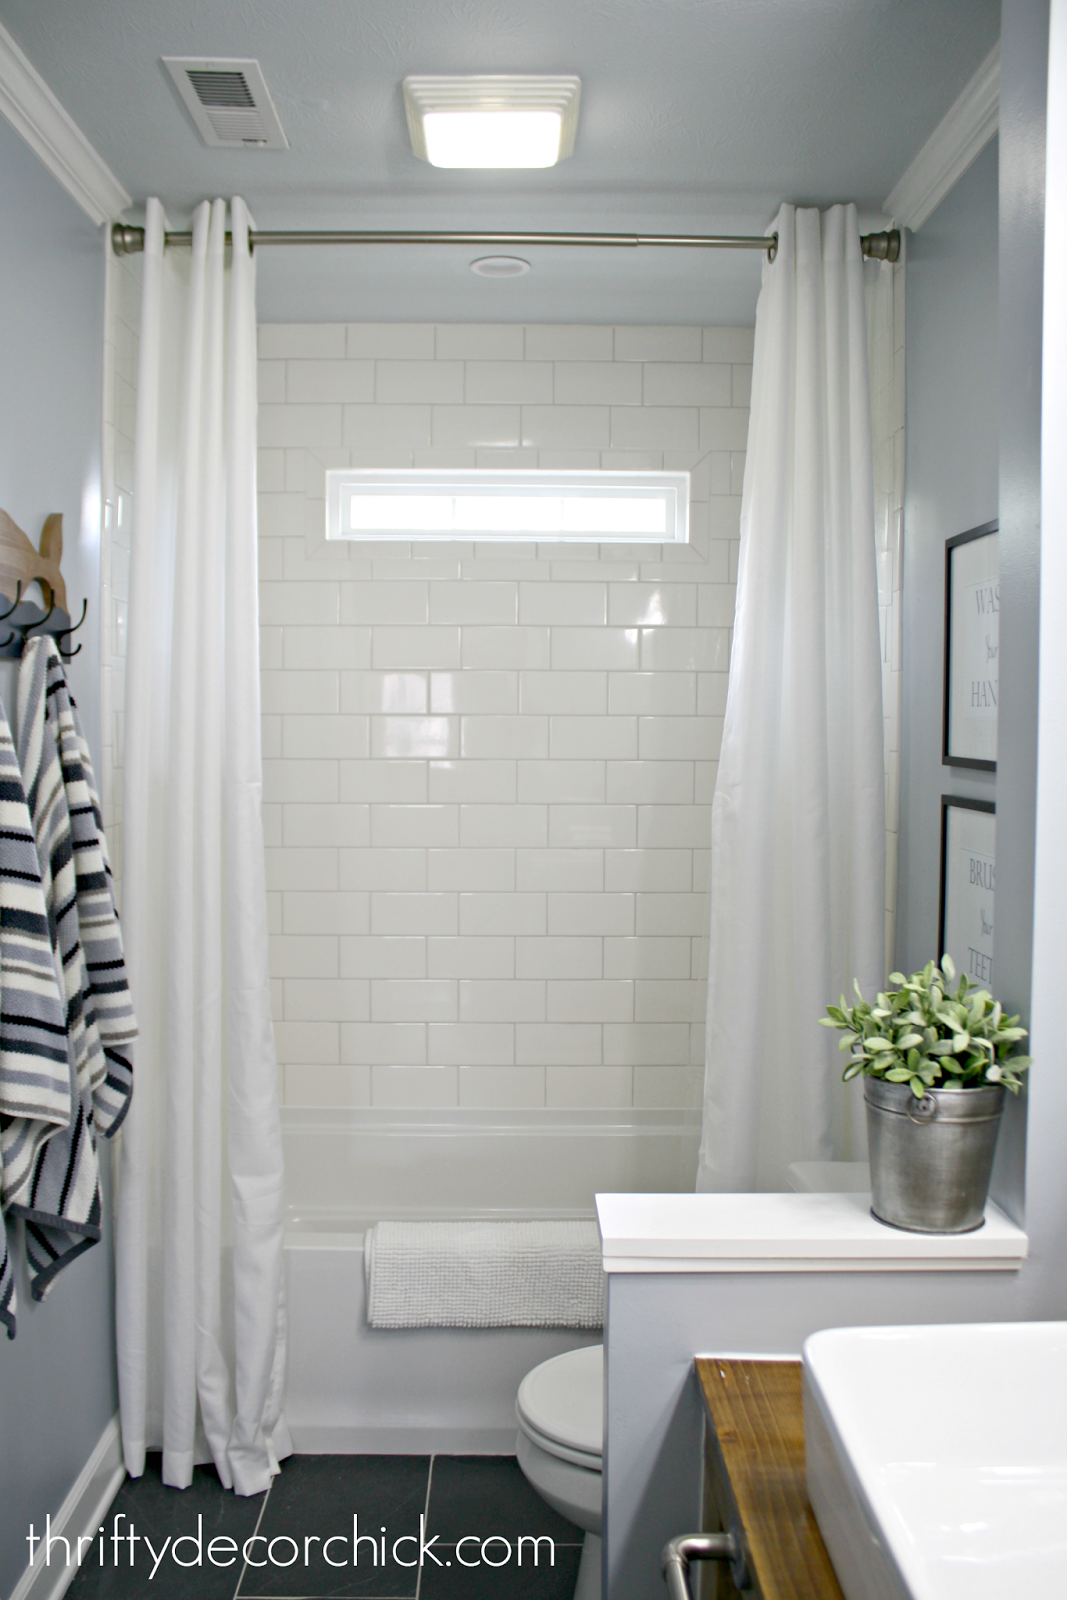 Awesome Drop in tub with subway tile